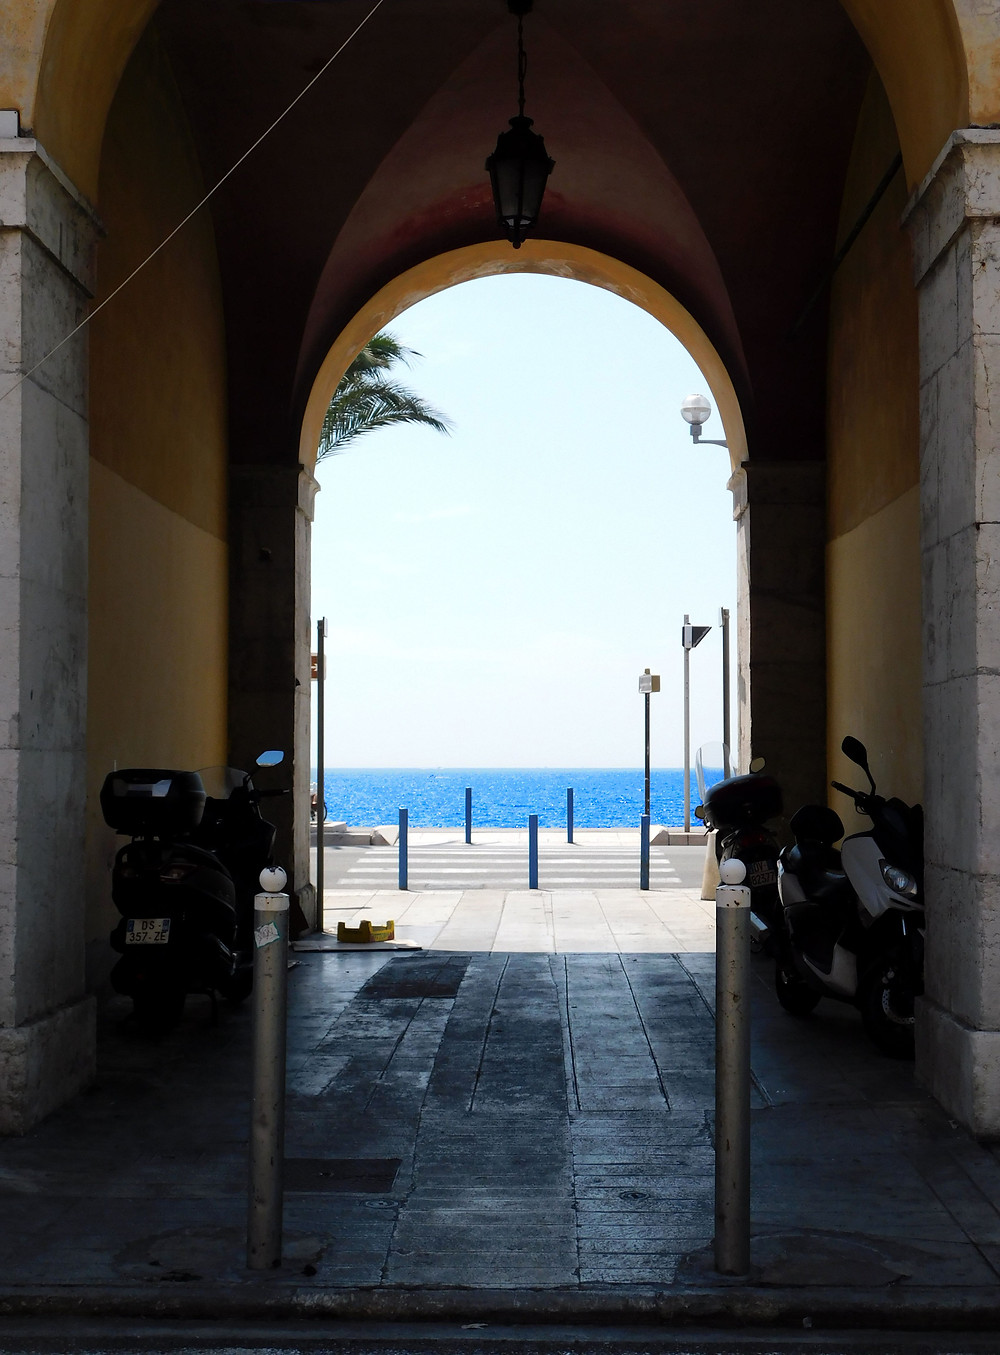 Blue ocean through ancient archway in Old Nice, France